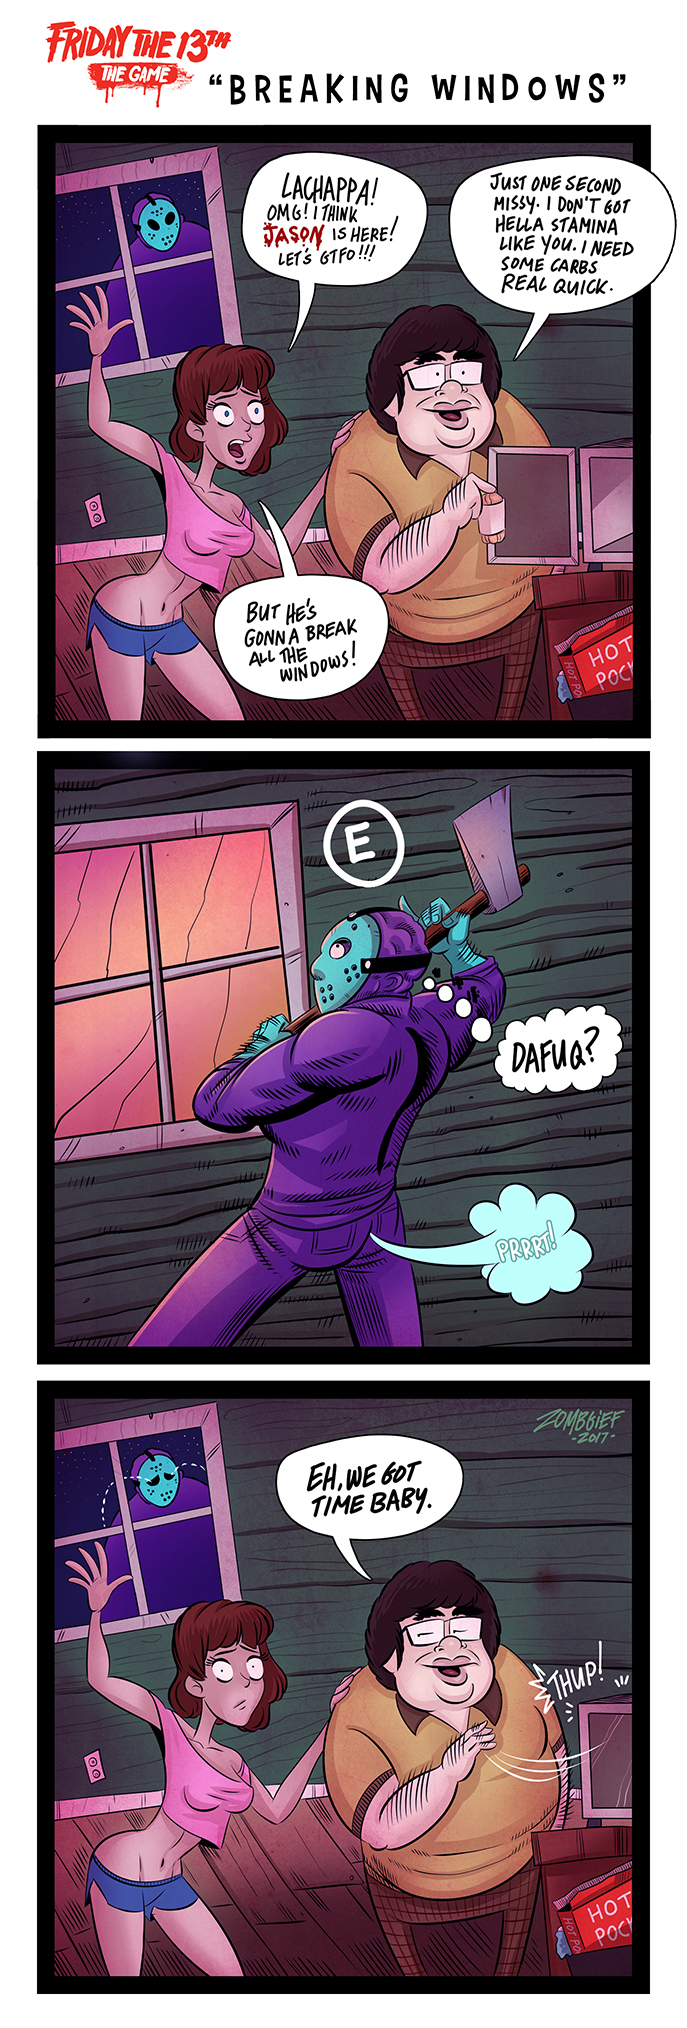 friday the 13th the game web comic the nerdy art of zombgief